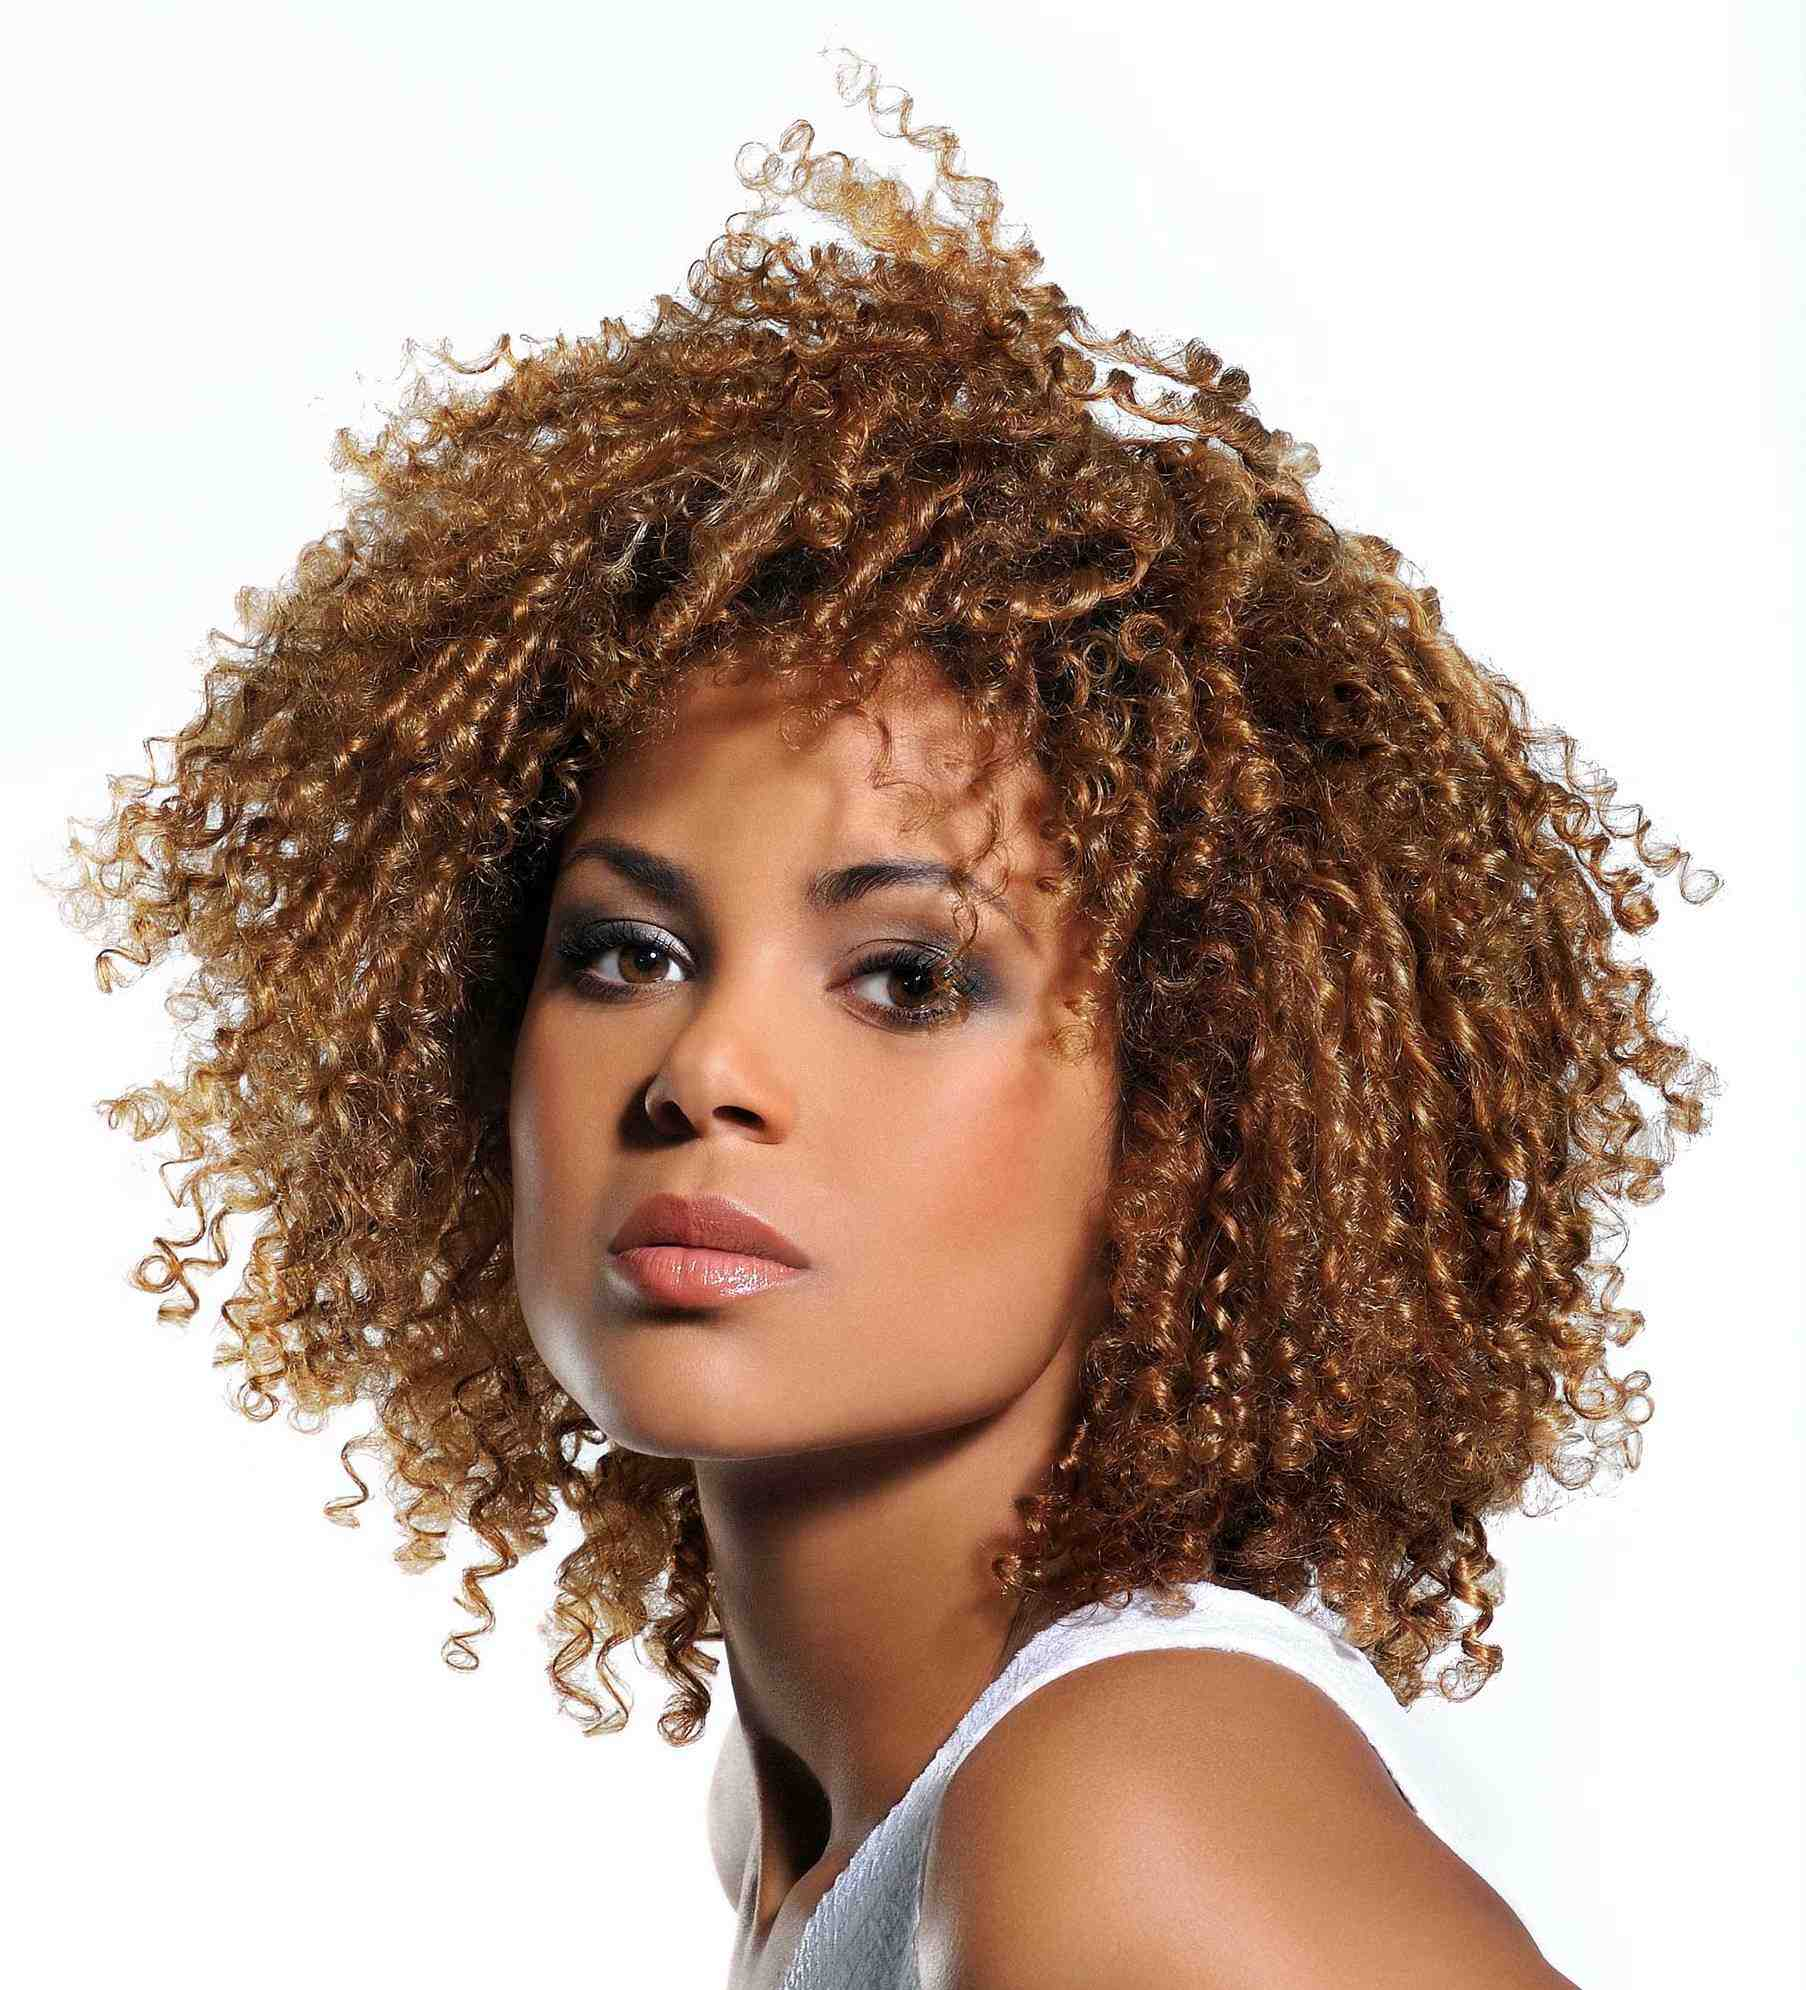 natural-african-american-women-curly-sondreas signature styles salon and spa - ethnic - african american - women of color - women - natural hair - relaxed hair - textured hair - el paso texas.jpg